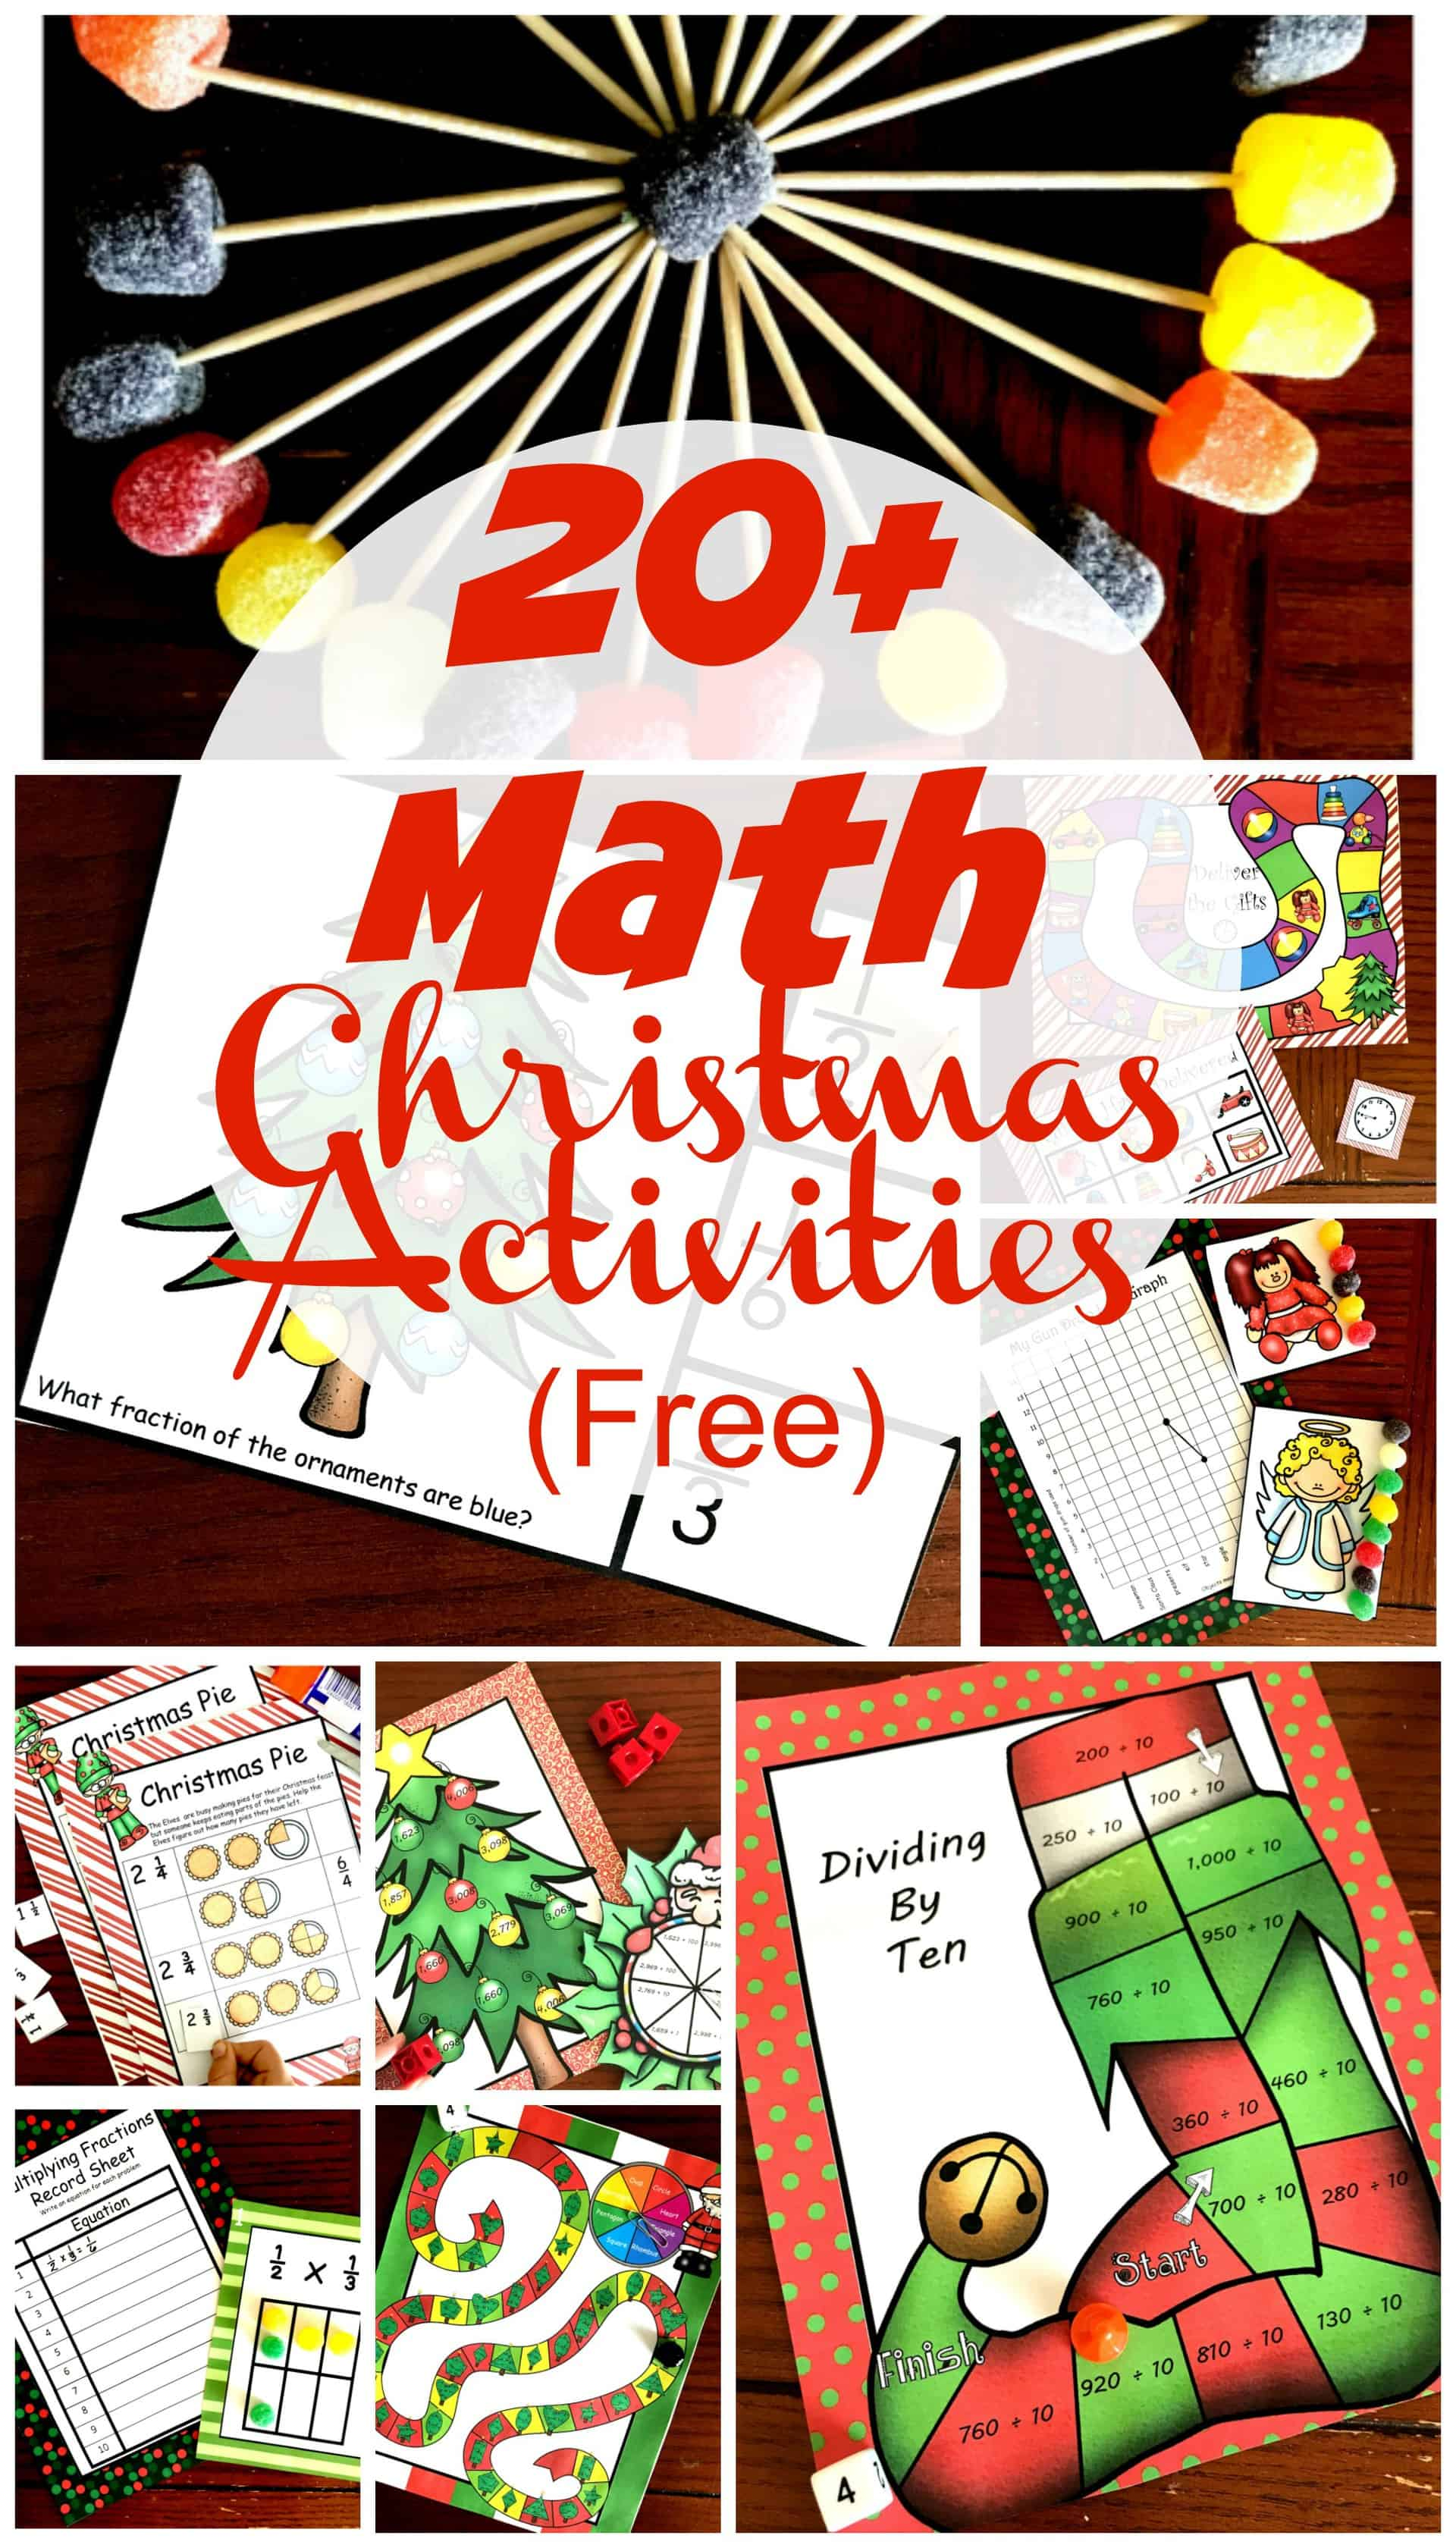 hight resolution of 20 FREE Christmas Math Activities for K - 5th Grade